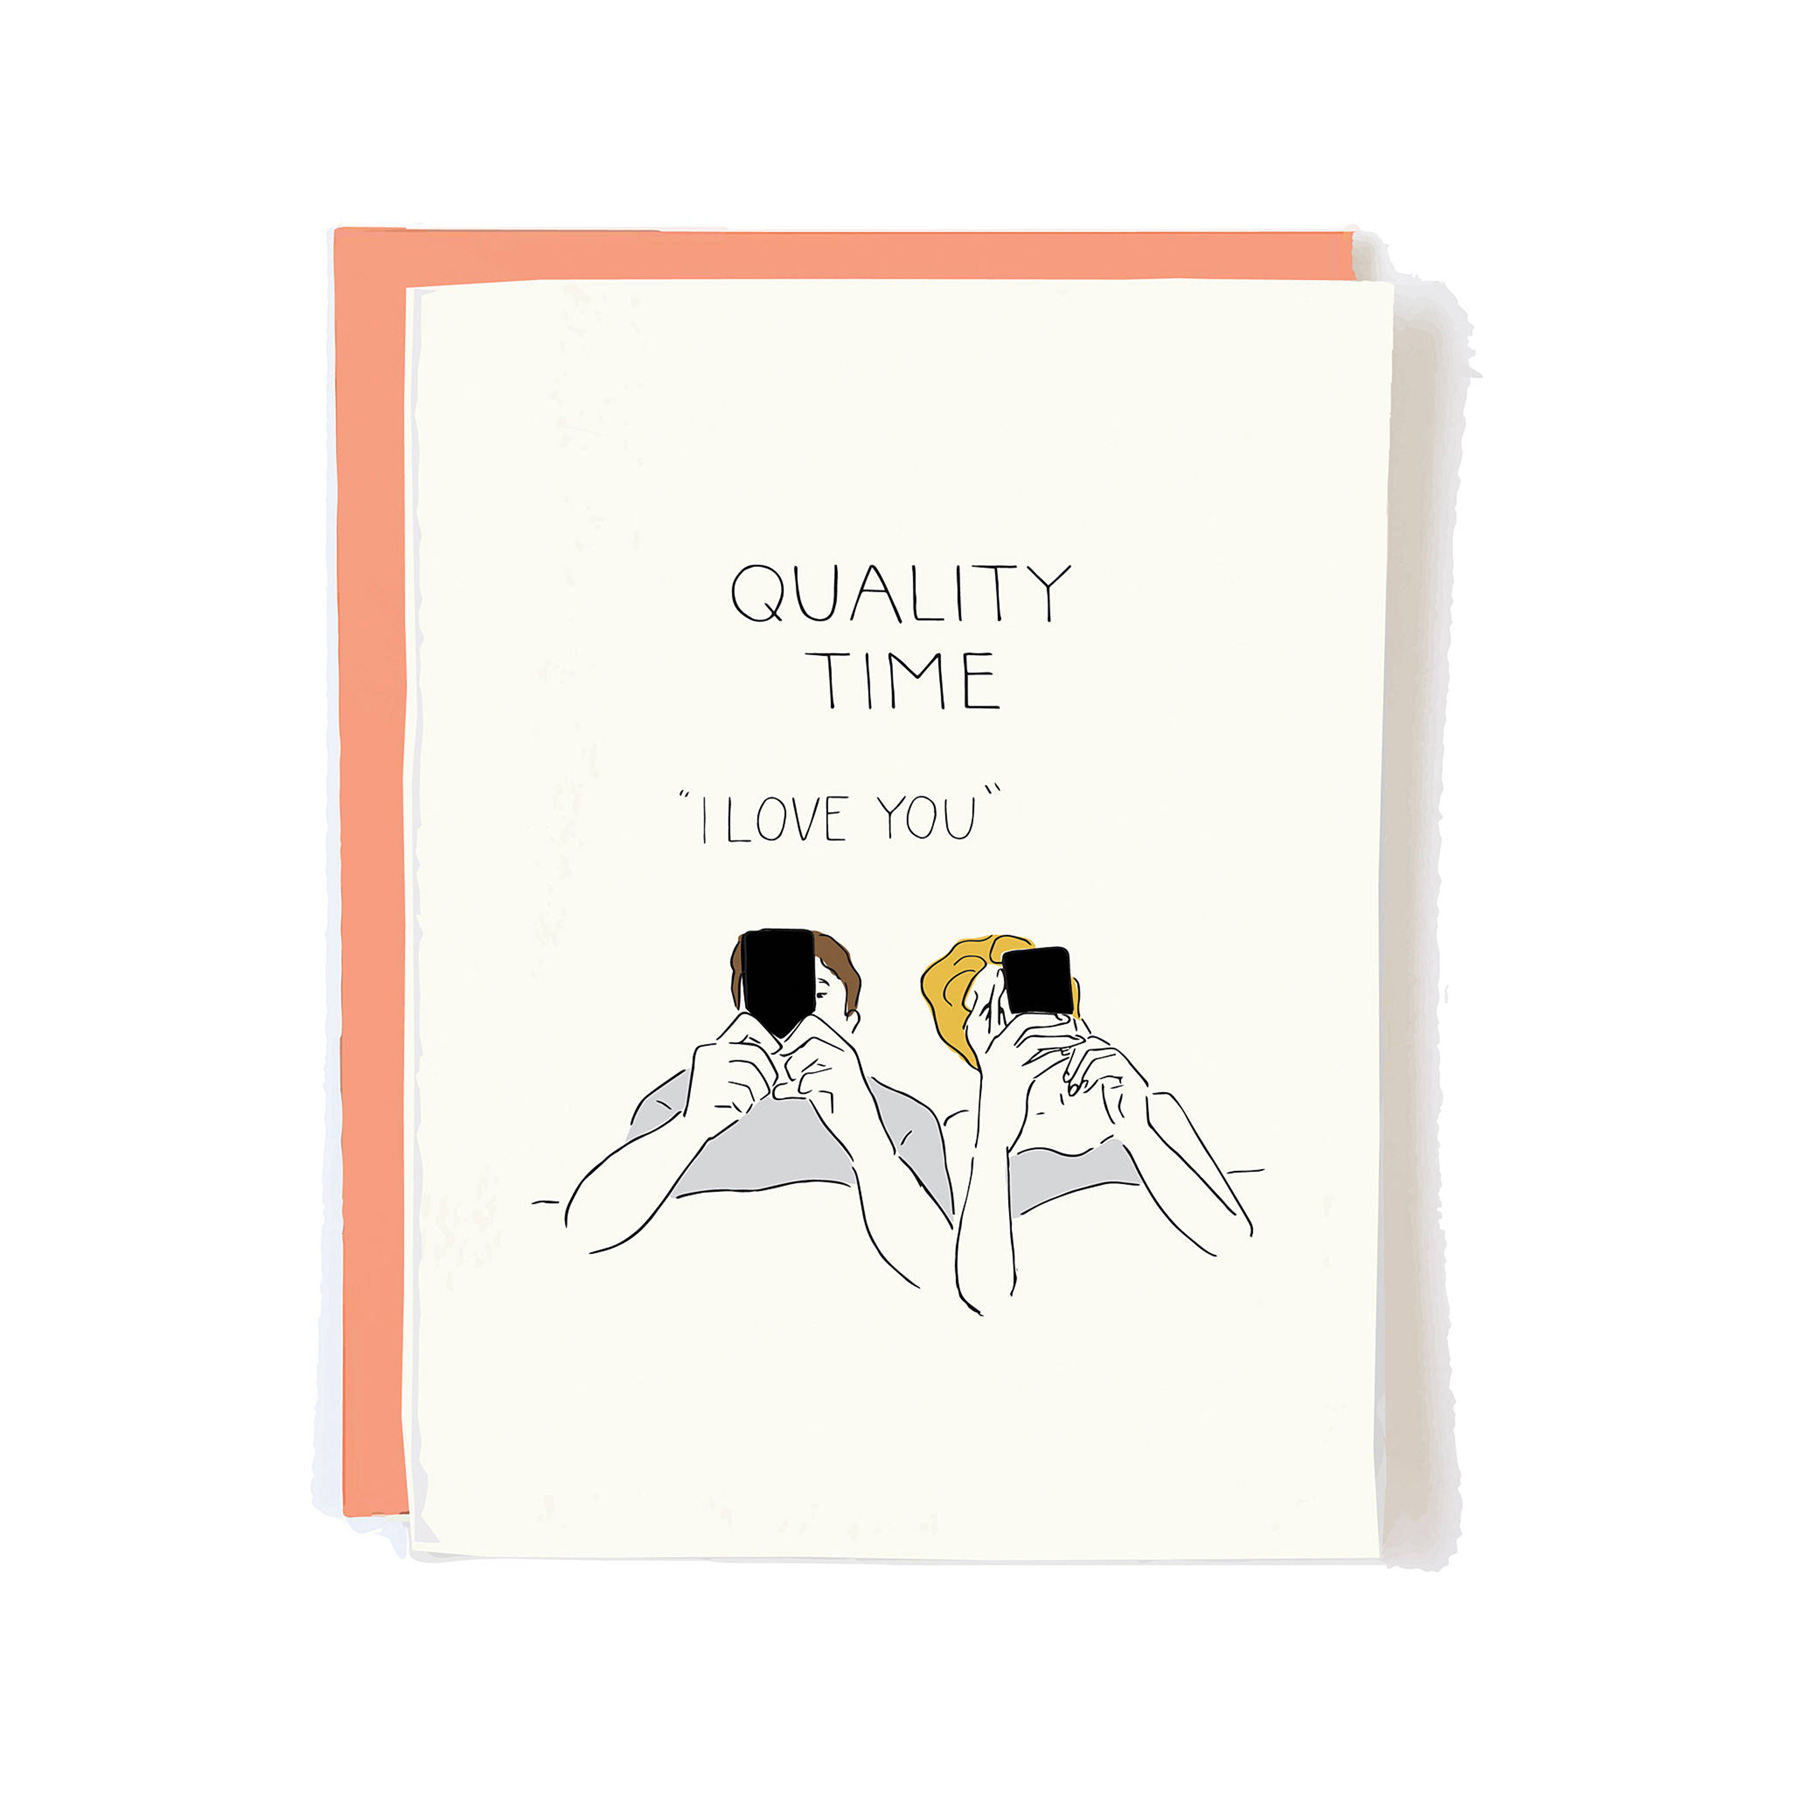 Funny Valentine's Day Gifts 2021: Urban Outfitters 'Quality Time' sarcastice Valentine's Day card